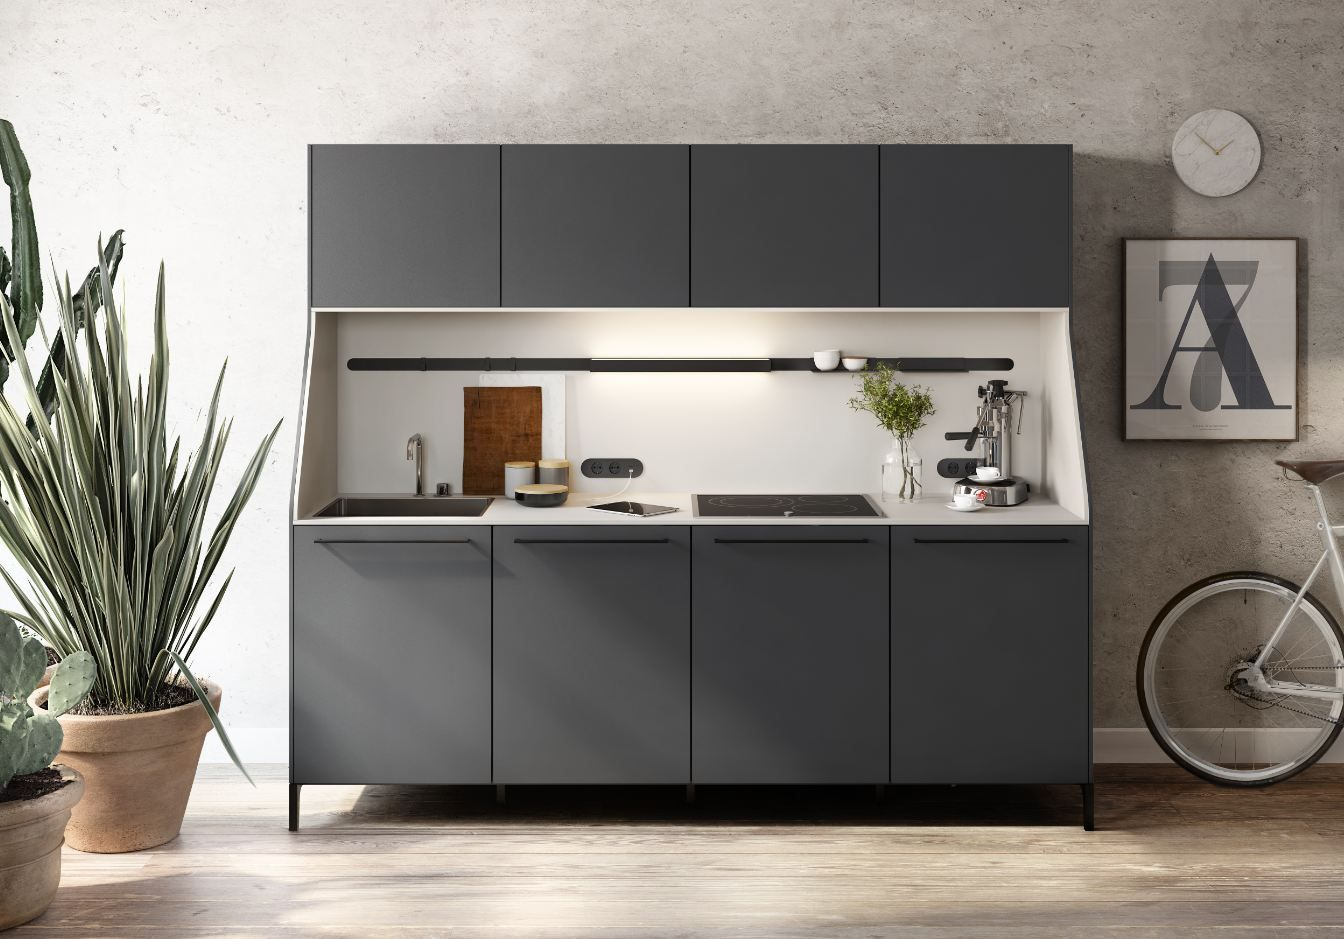 Paradigm Busting SieMatic 29 URBAN Series Kitchens Composed Of